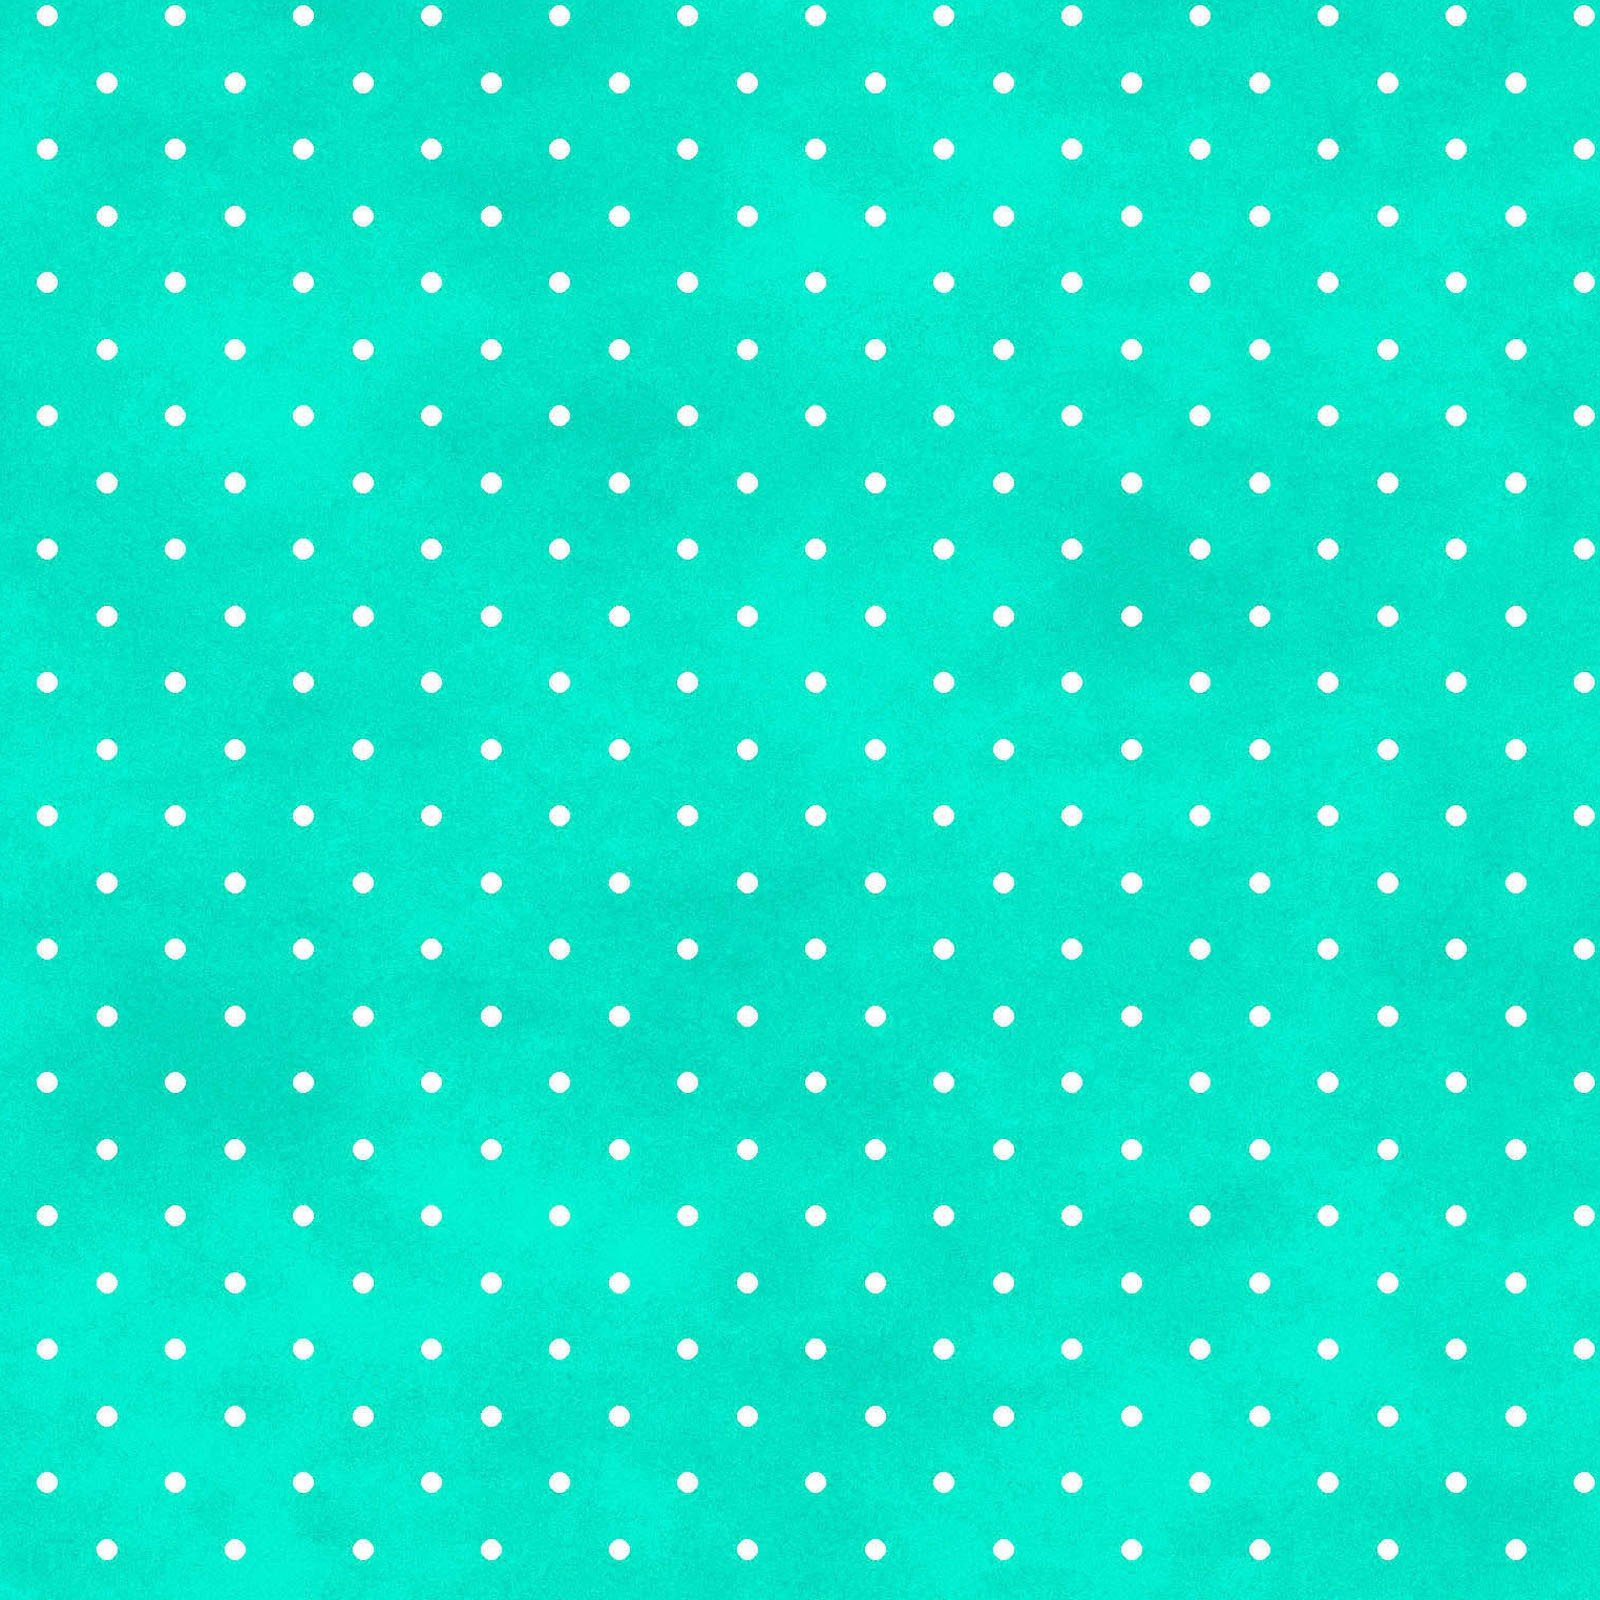 Pin Dots - Aqua 609-Q2<br/>Maywood Studio